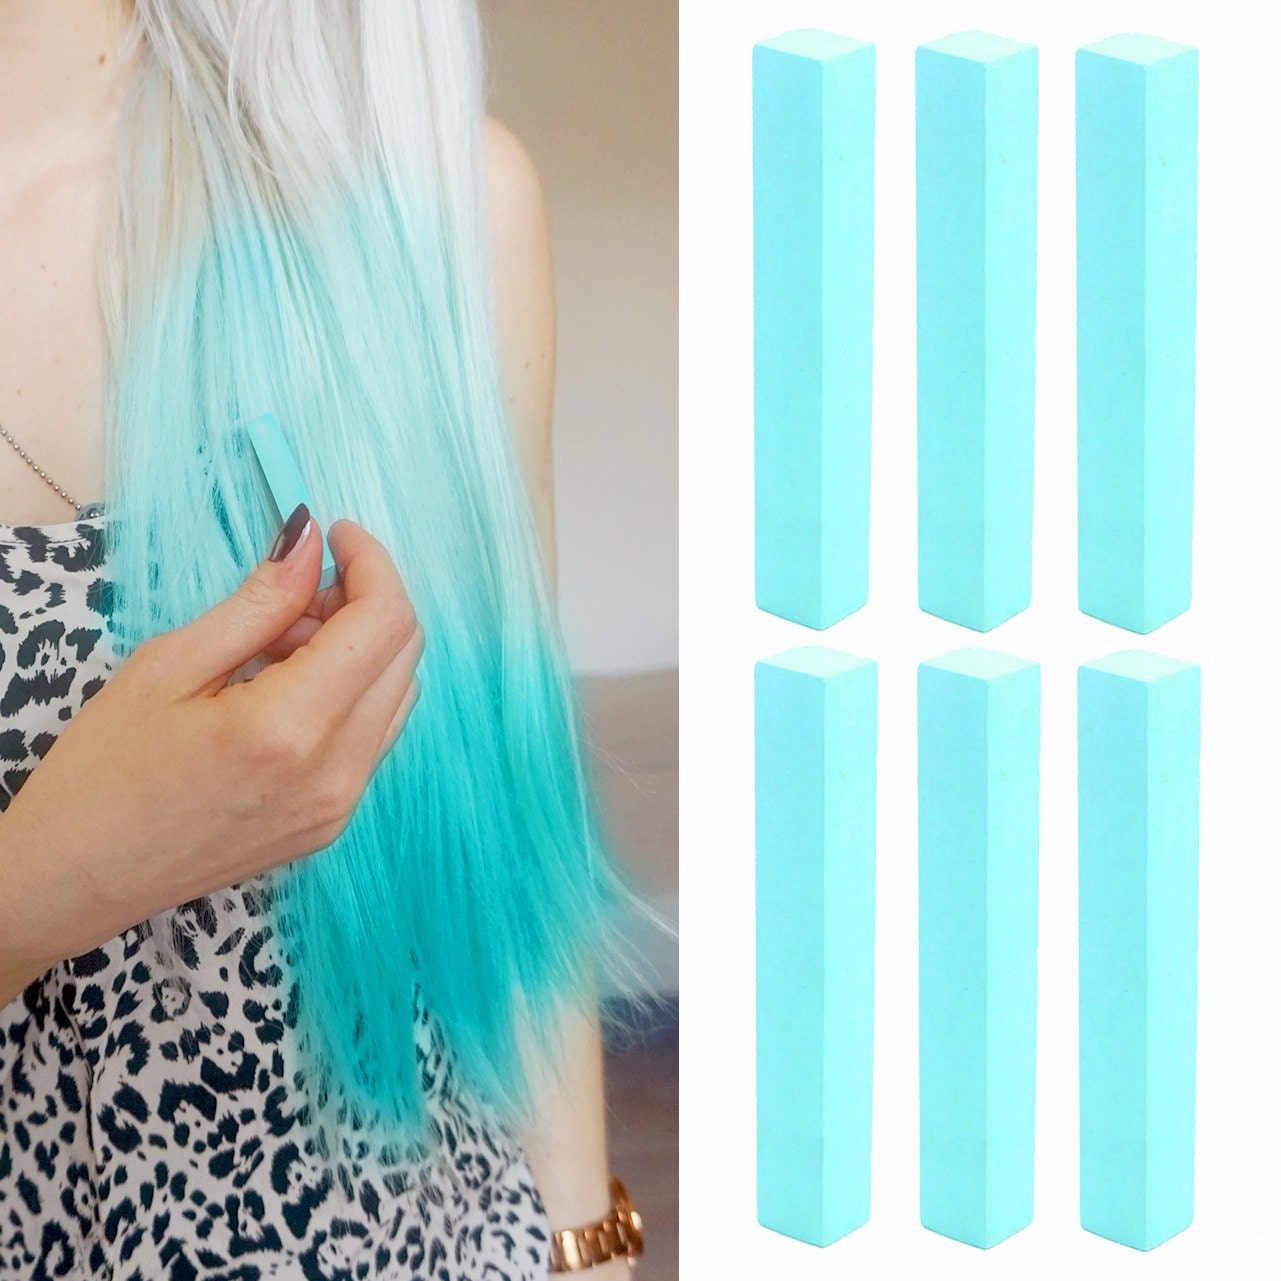 6 Best Temporary Turquoise Mint Hair Dye For Dark And Light